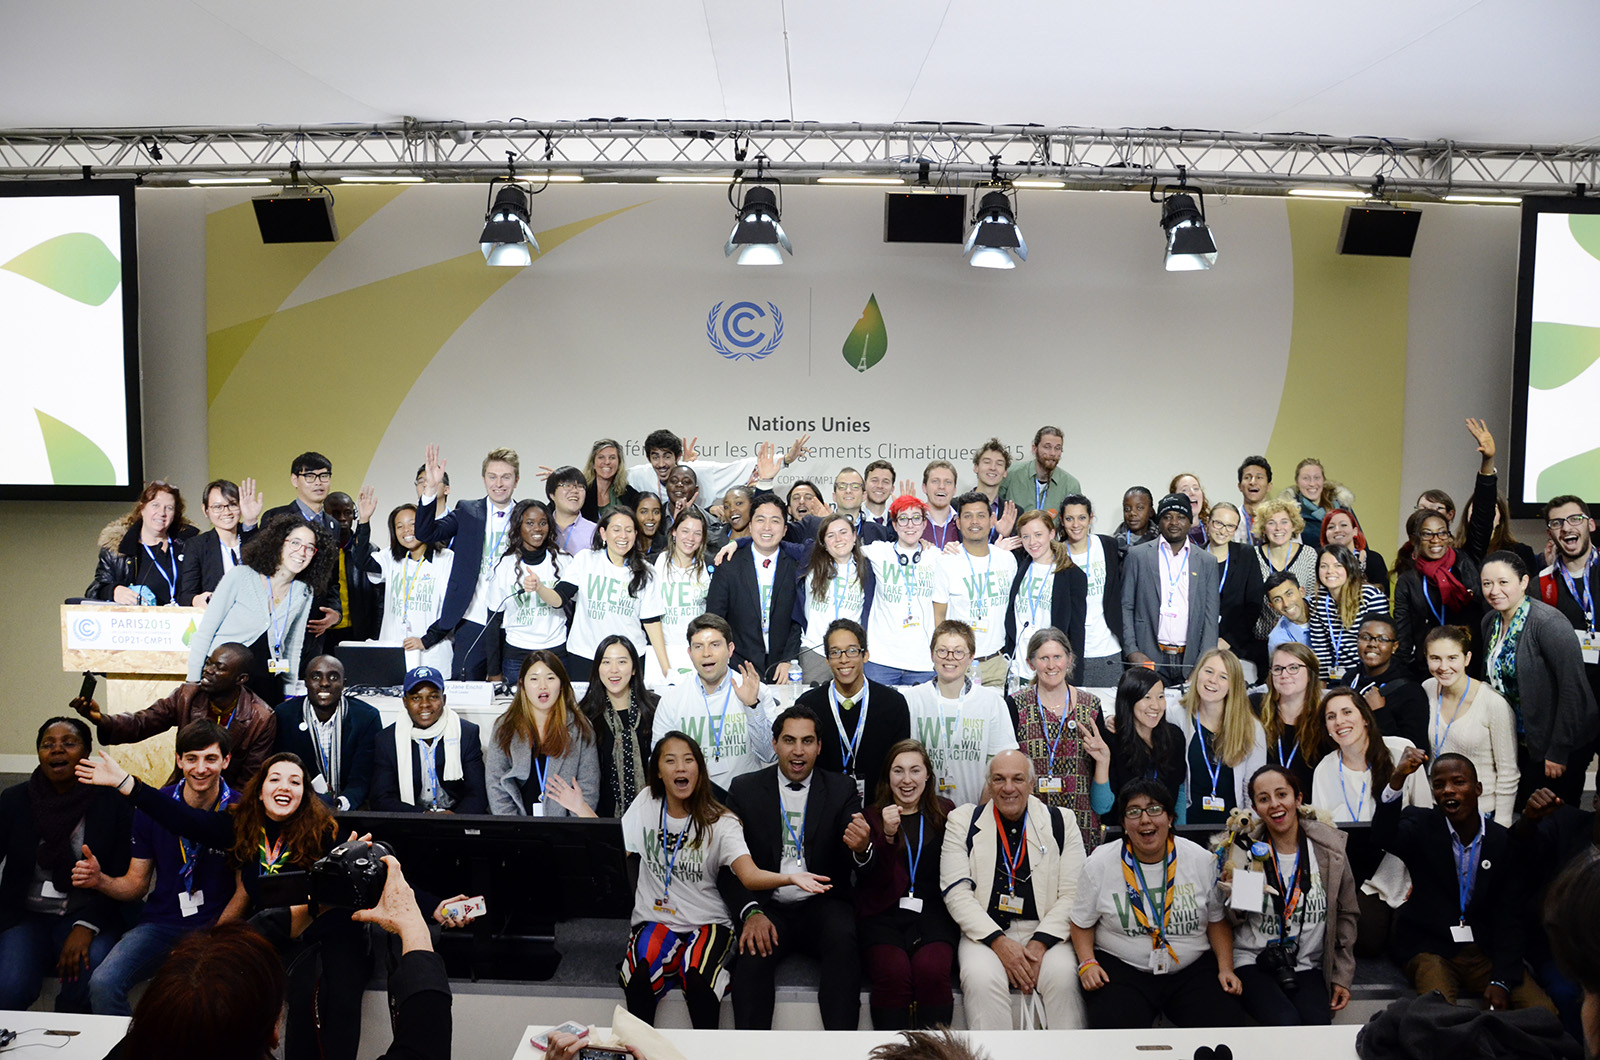 Youth and Future Generations Day at COP21